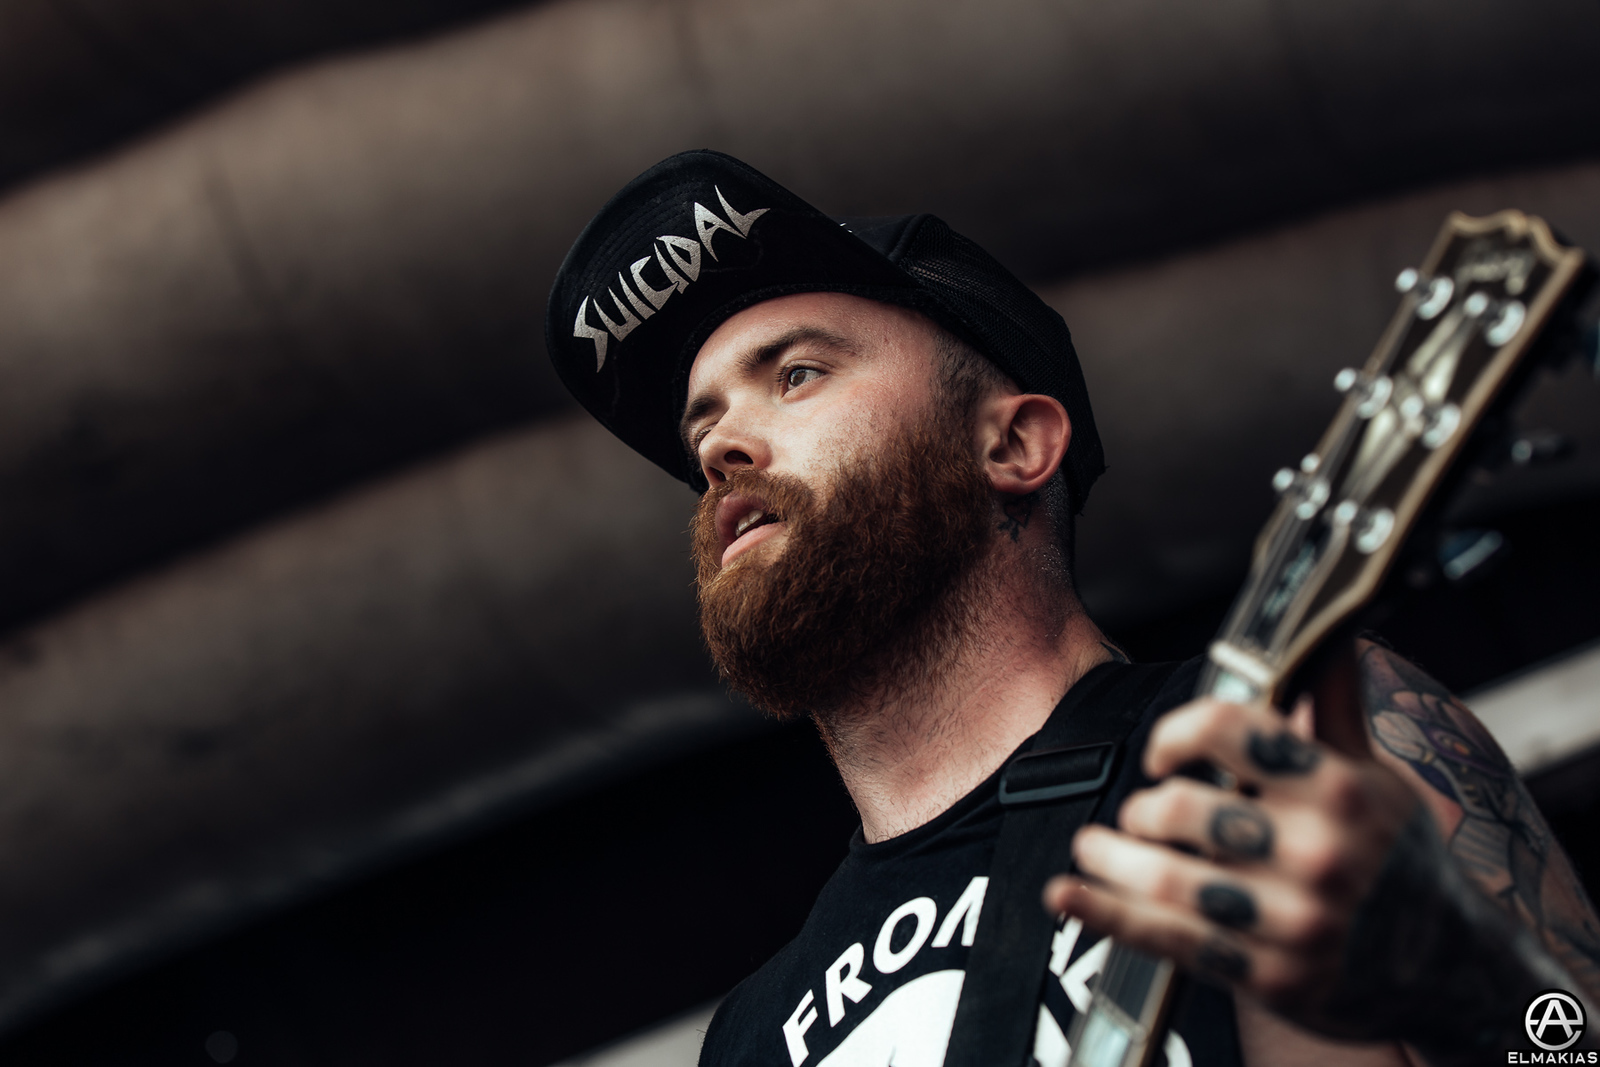 Taylor Lumley of Beartooth live at Vans Warped Tour 2015 by Adam Elmakias